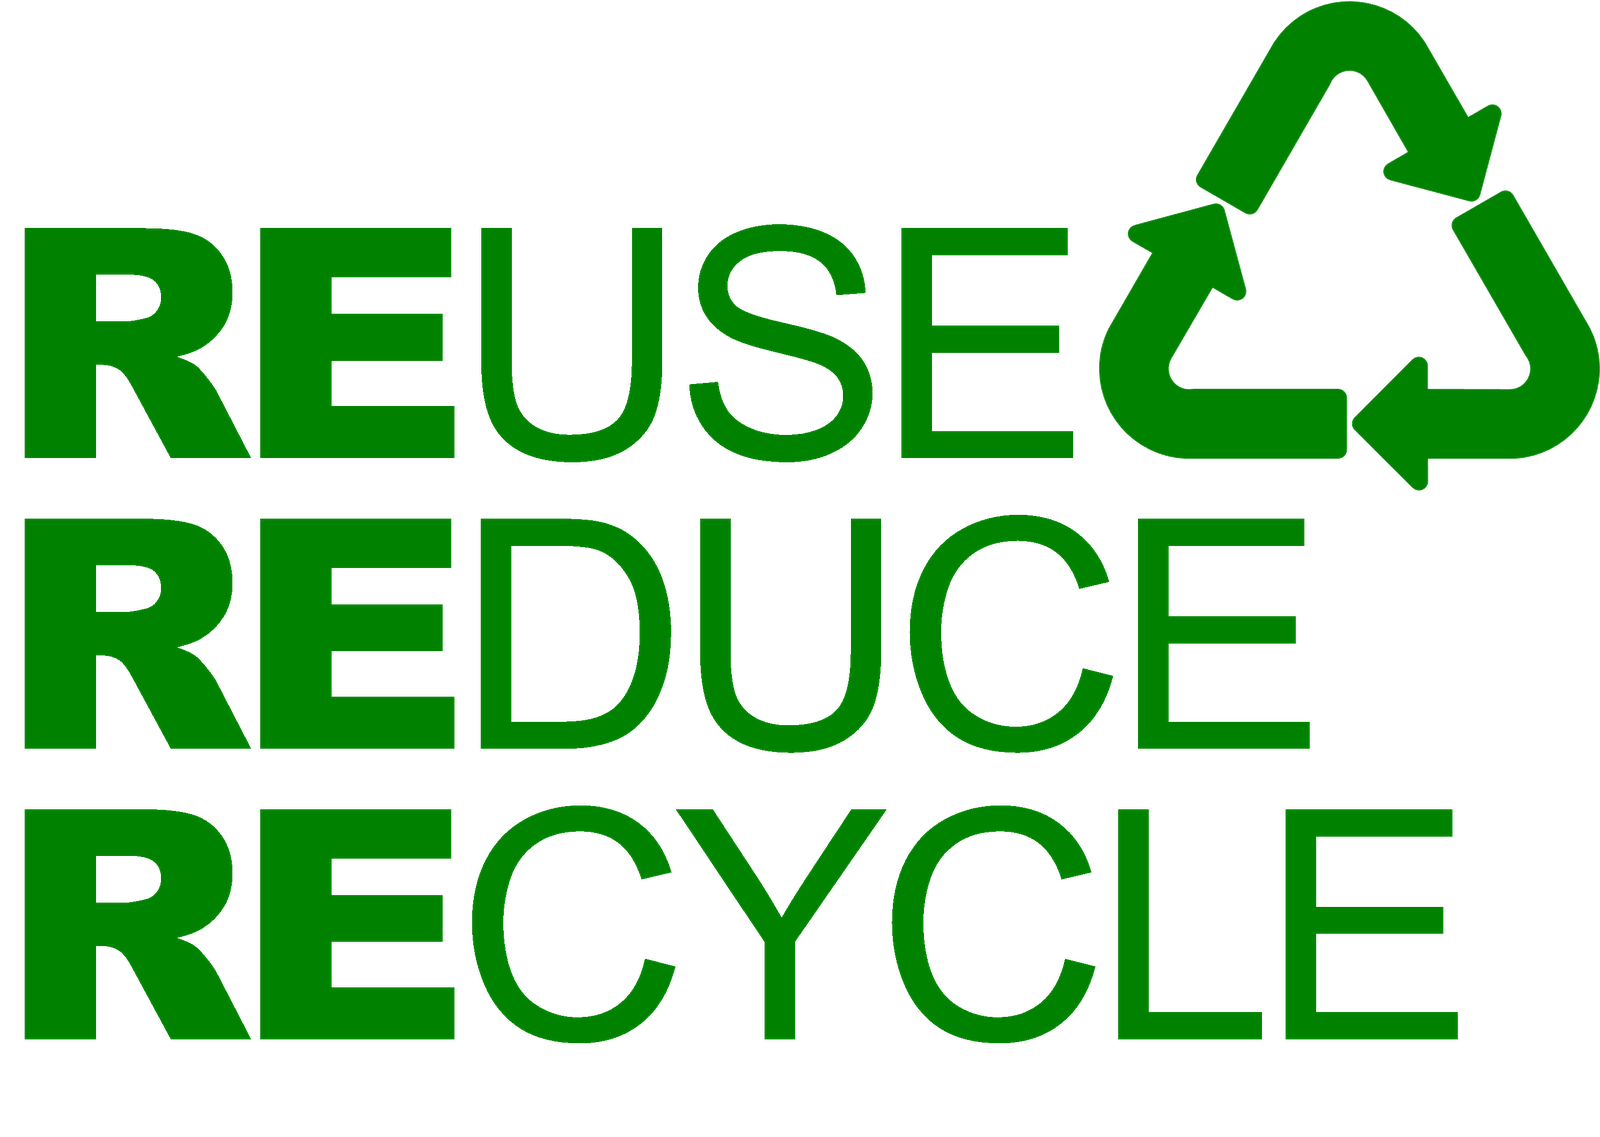 Resue ...Reduce...Recycle..Save the world